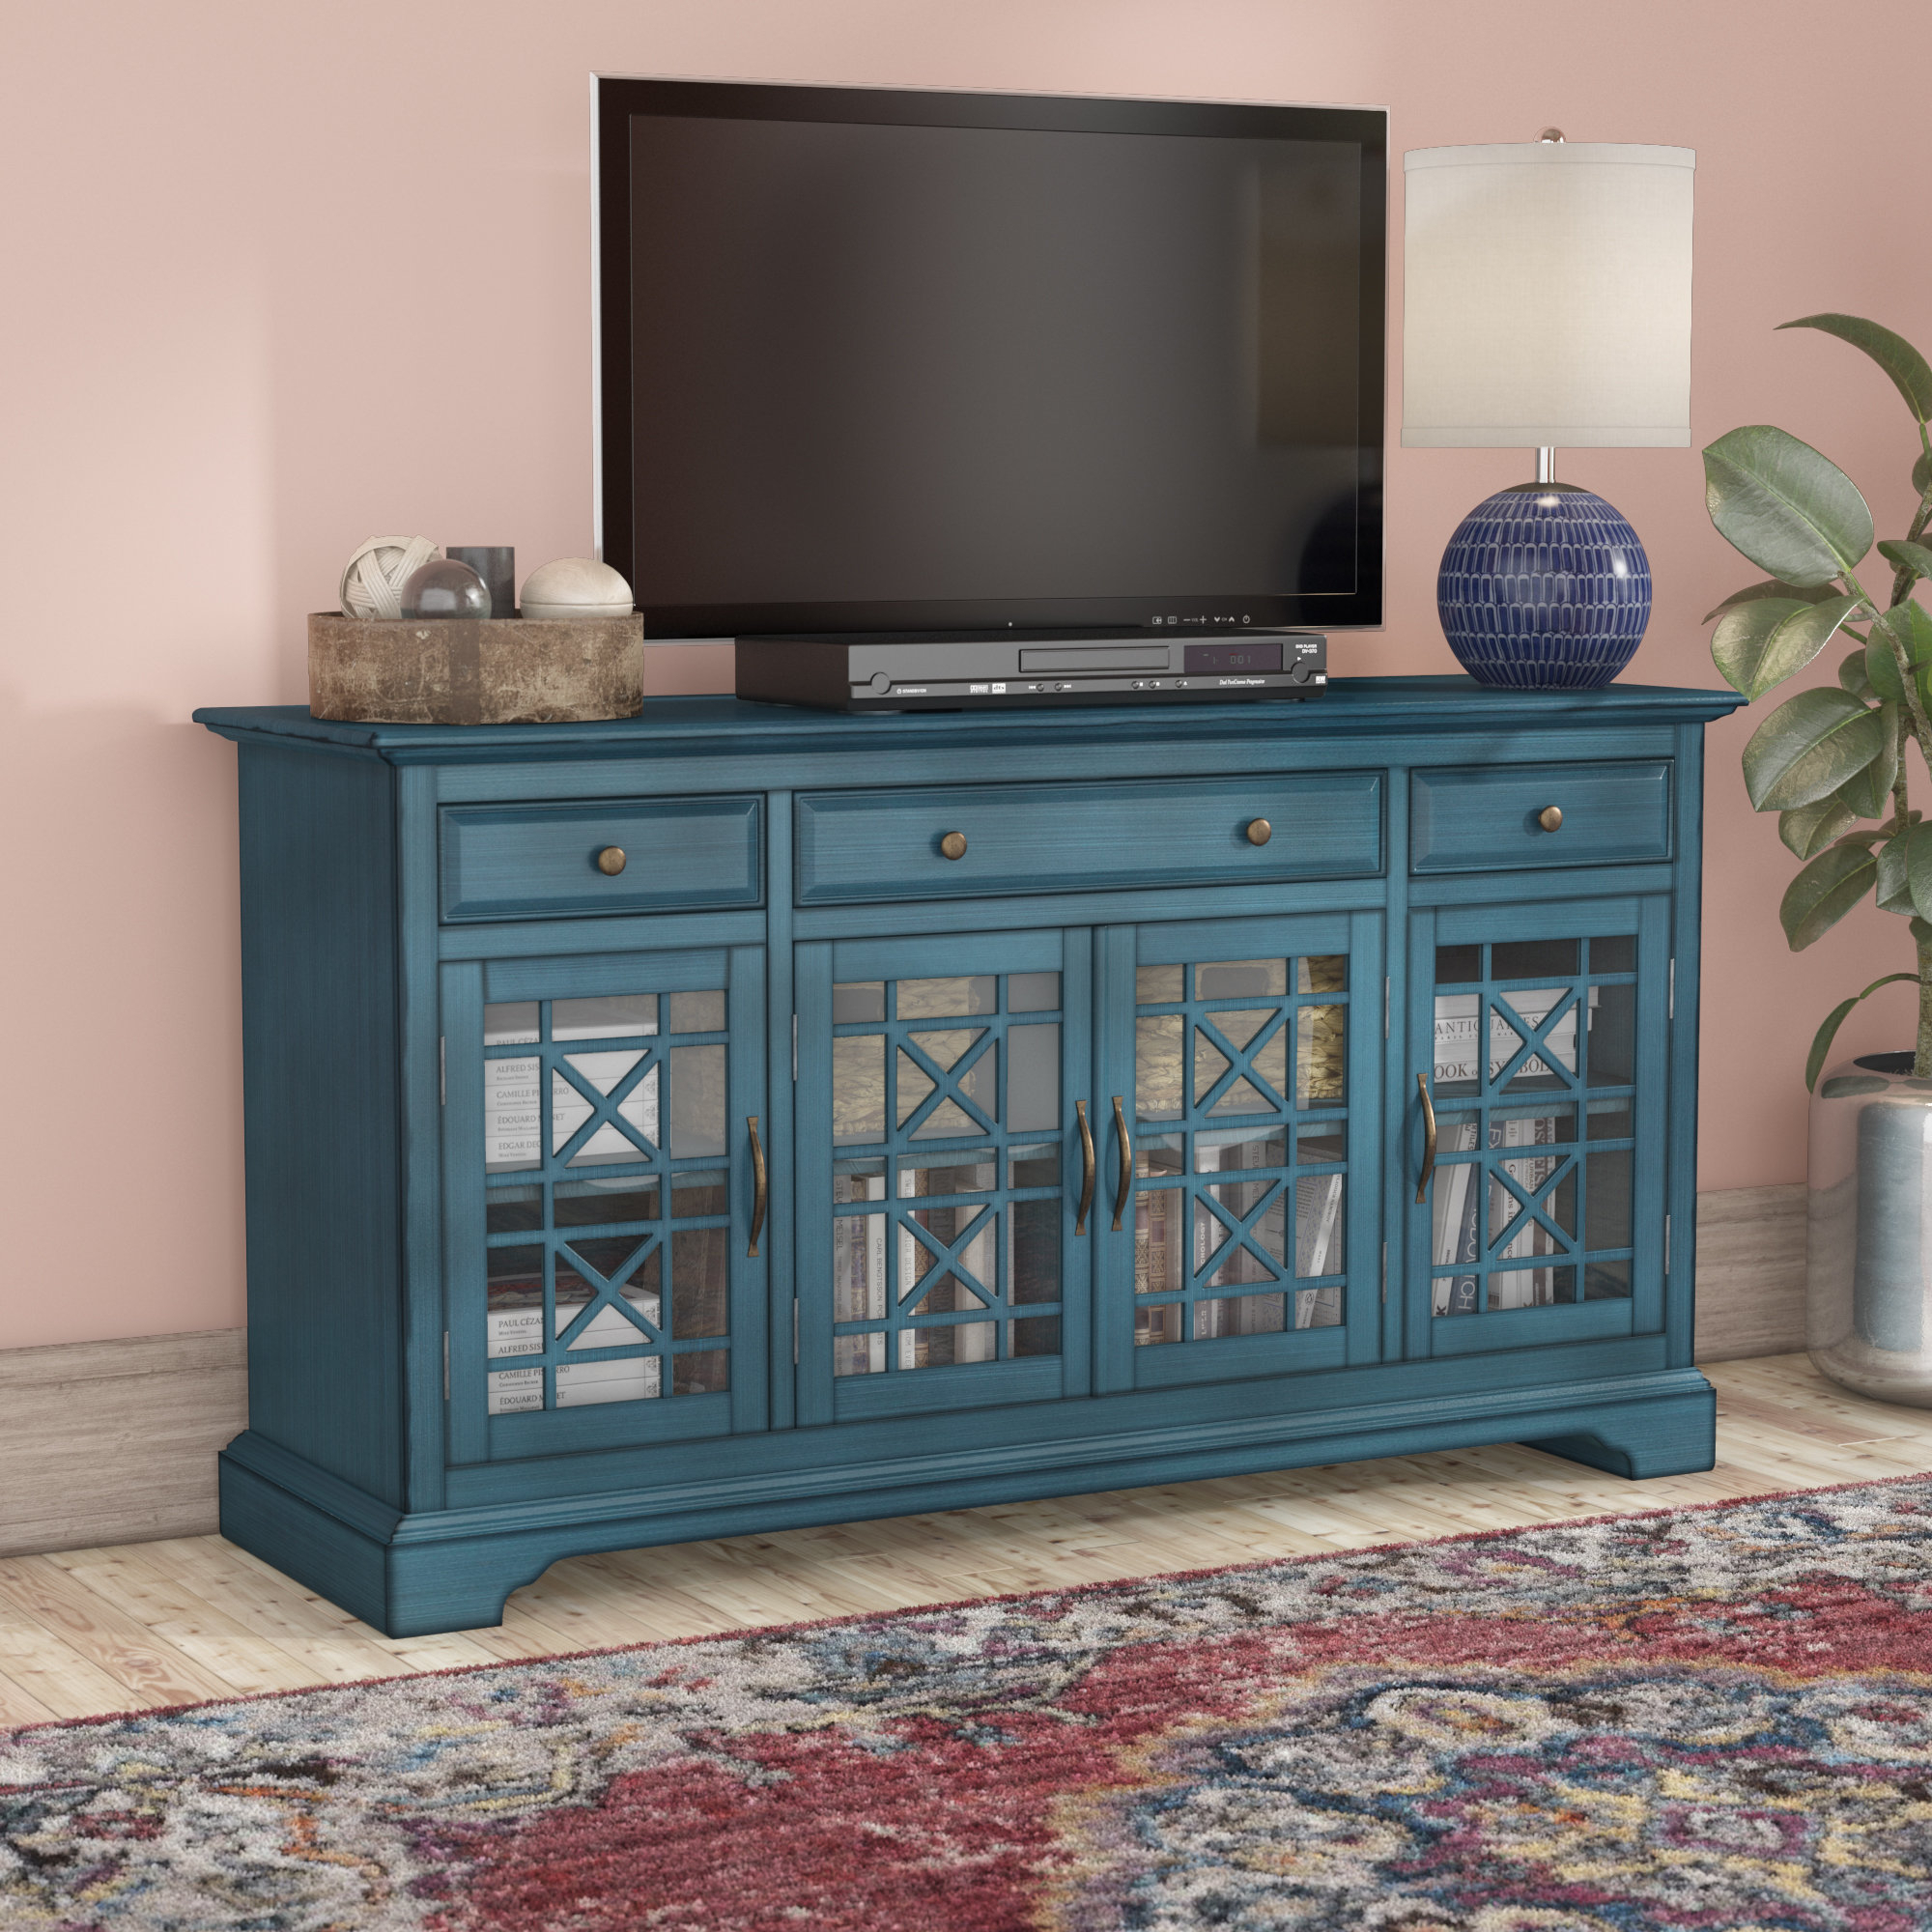 Tv Stand For 75 Inch Tv | Wayfair In Laurent 60 Inch Tv Stands (View 22 of 30)